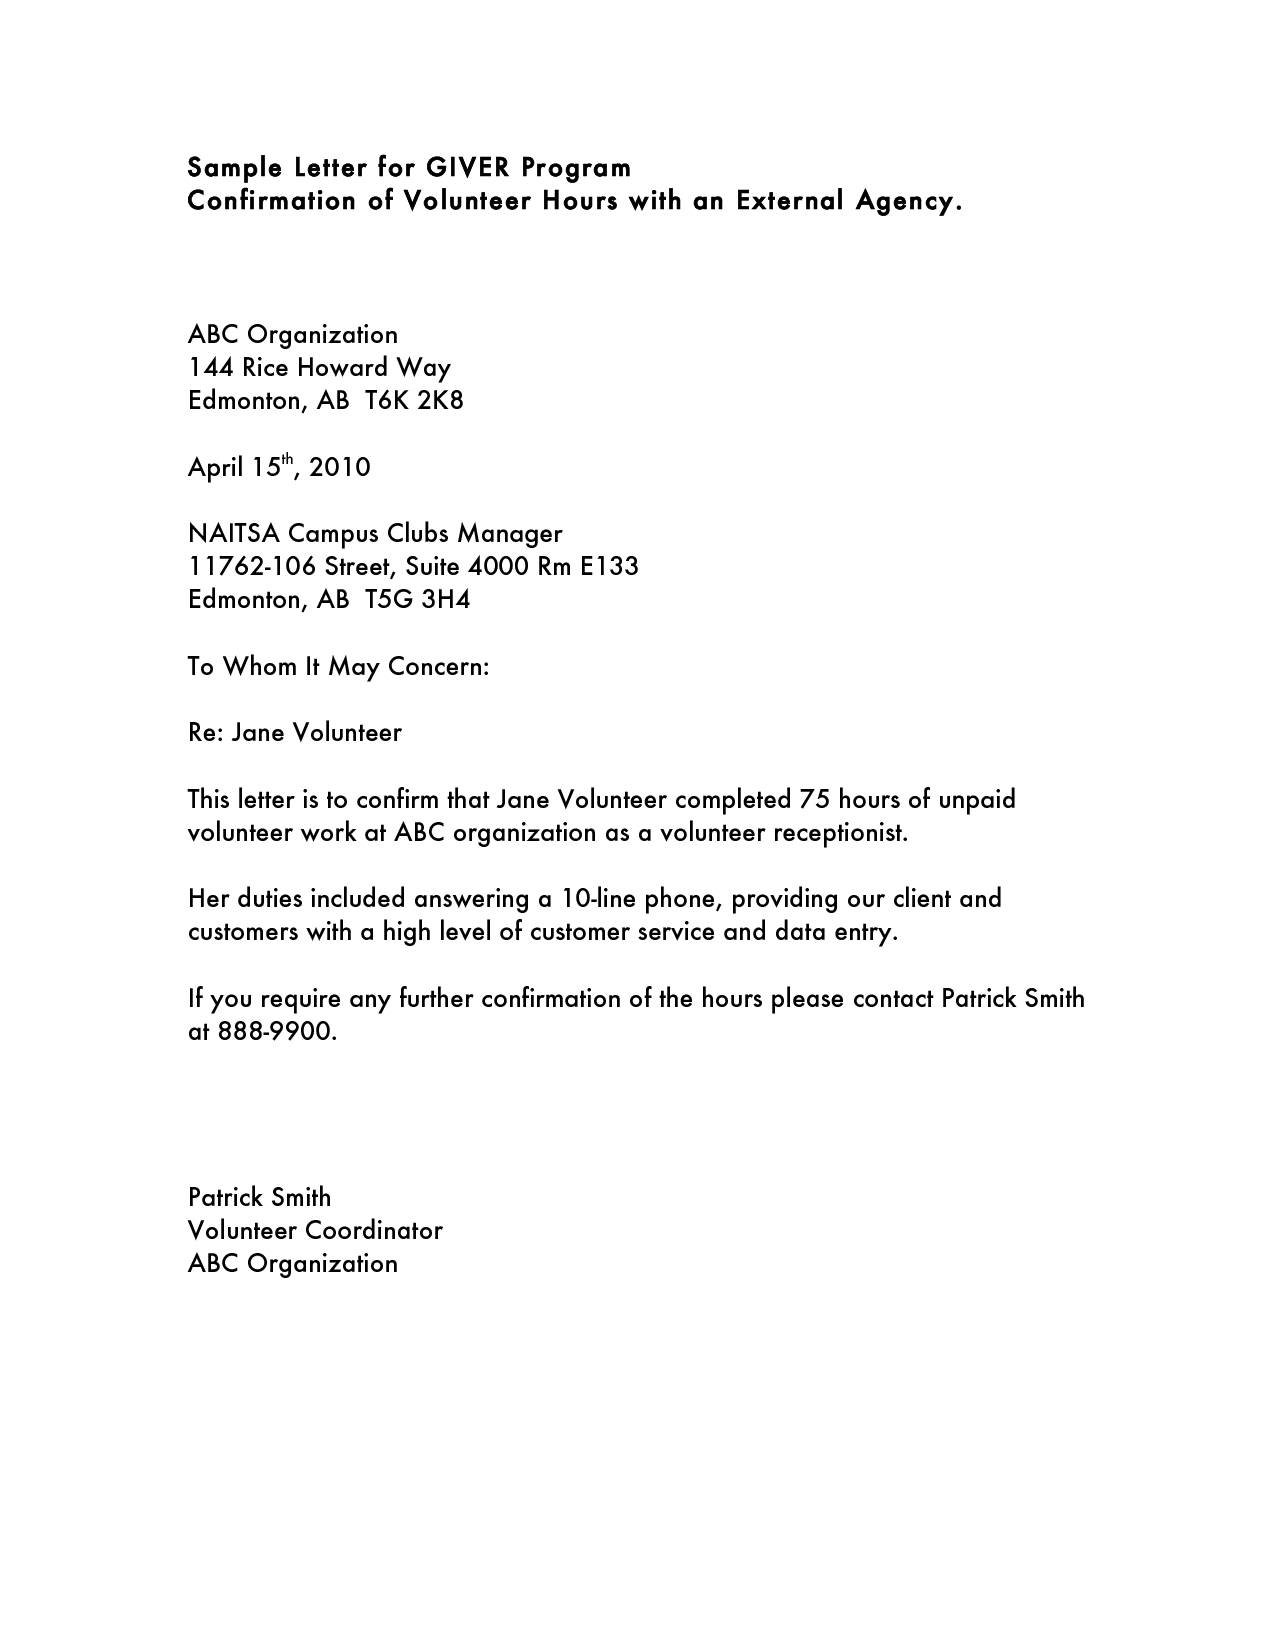 volunteer hours confirmation letter template Collection-Sample Munity Service Hours Letter Sample munity Service Letter Ideas 17-p